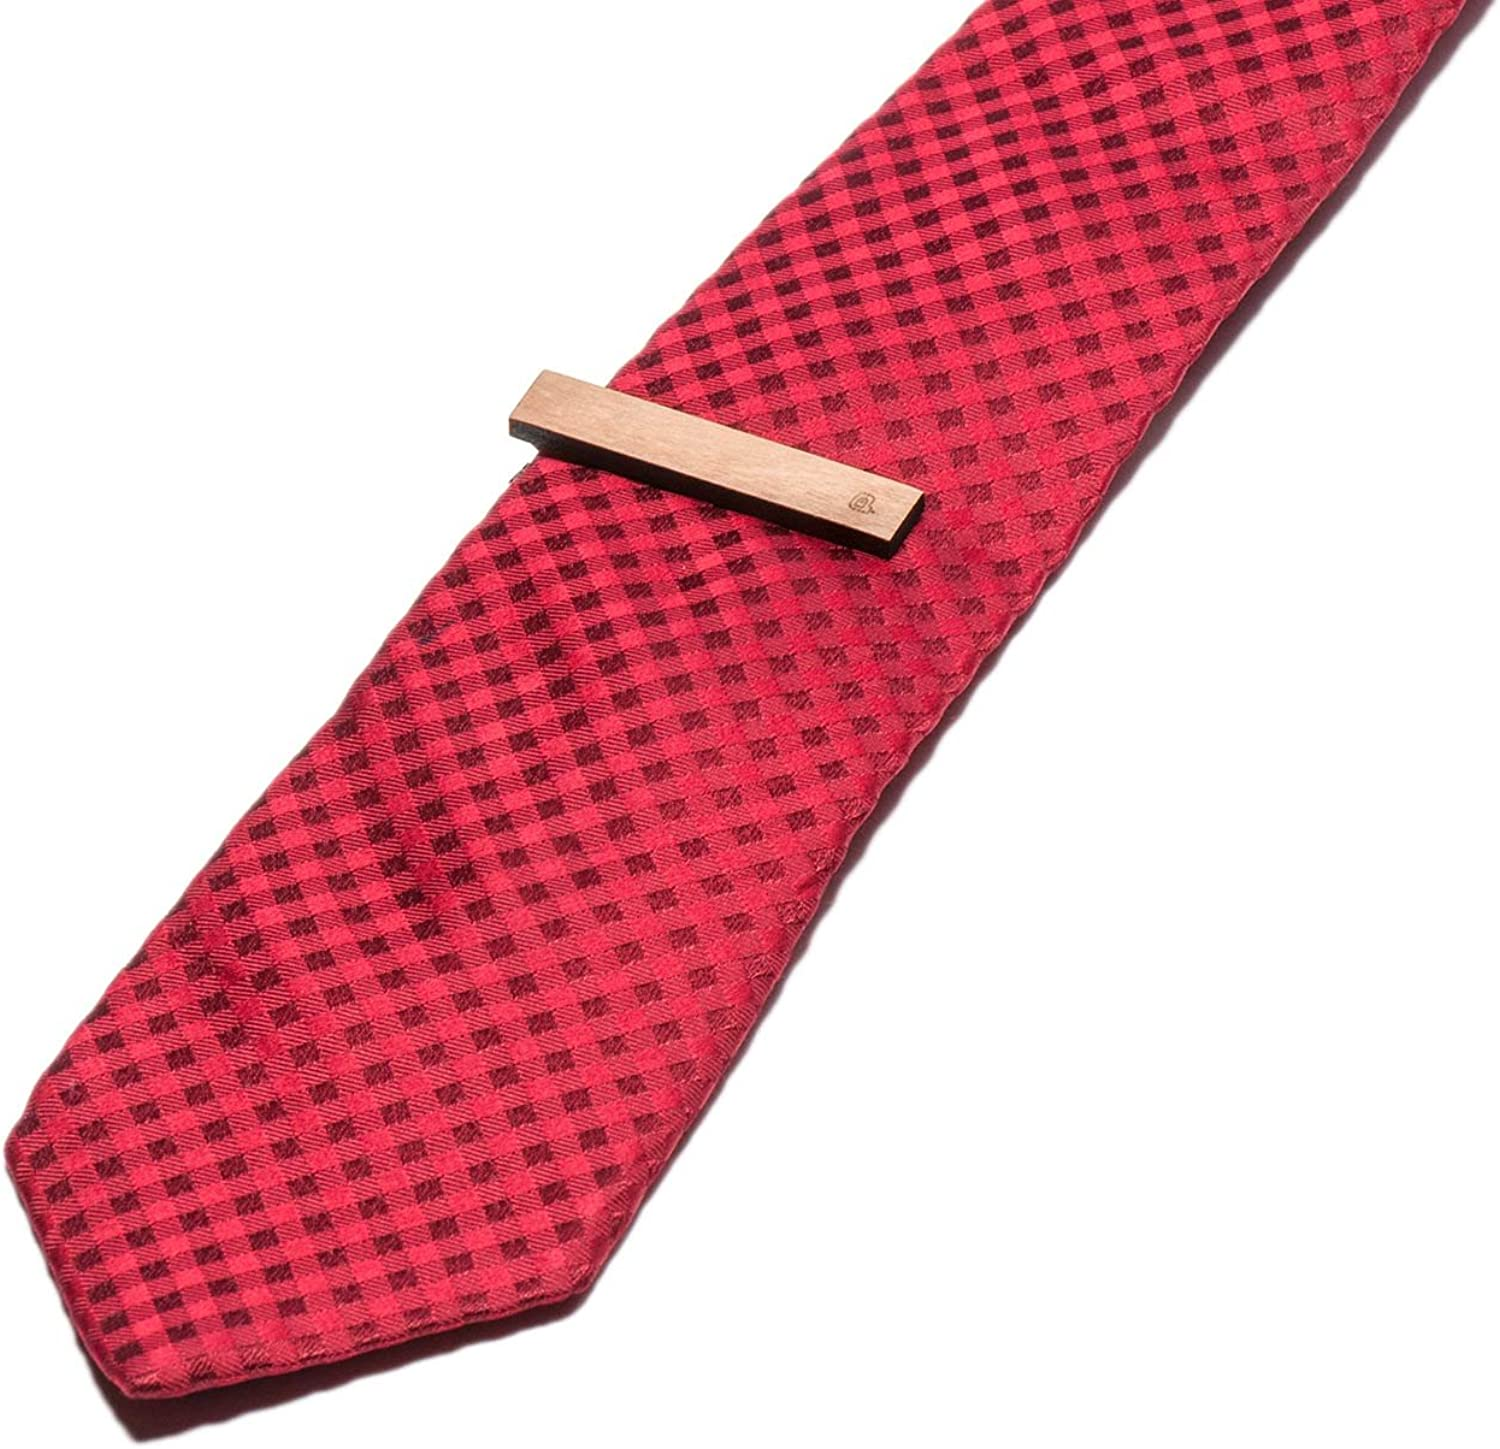 Wooden Accessories Company Wooden Tie Clips with Laser Engraved Tape Tool Design Cherry Wood Tie Bar Engraved in The USA